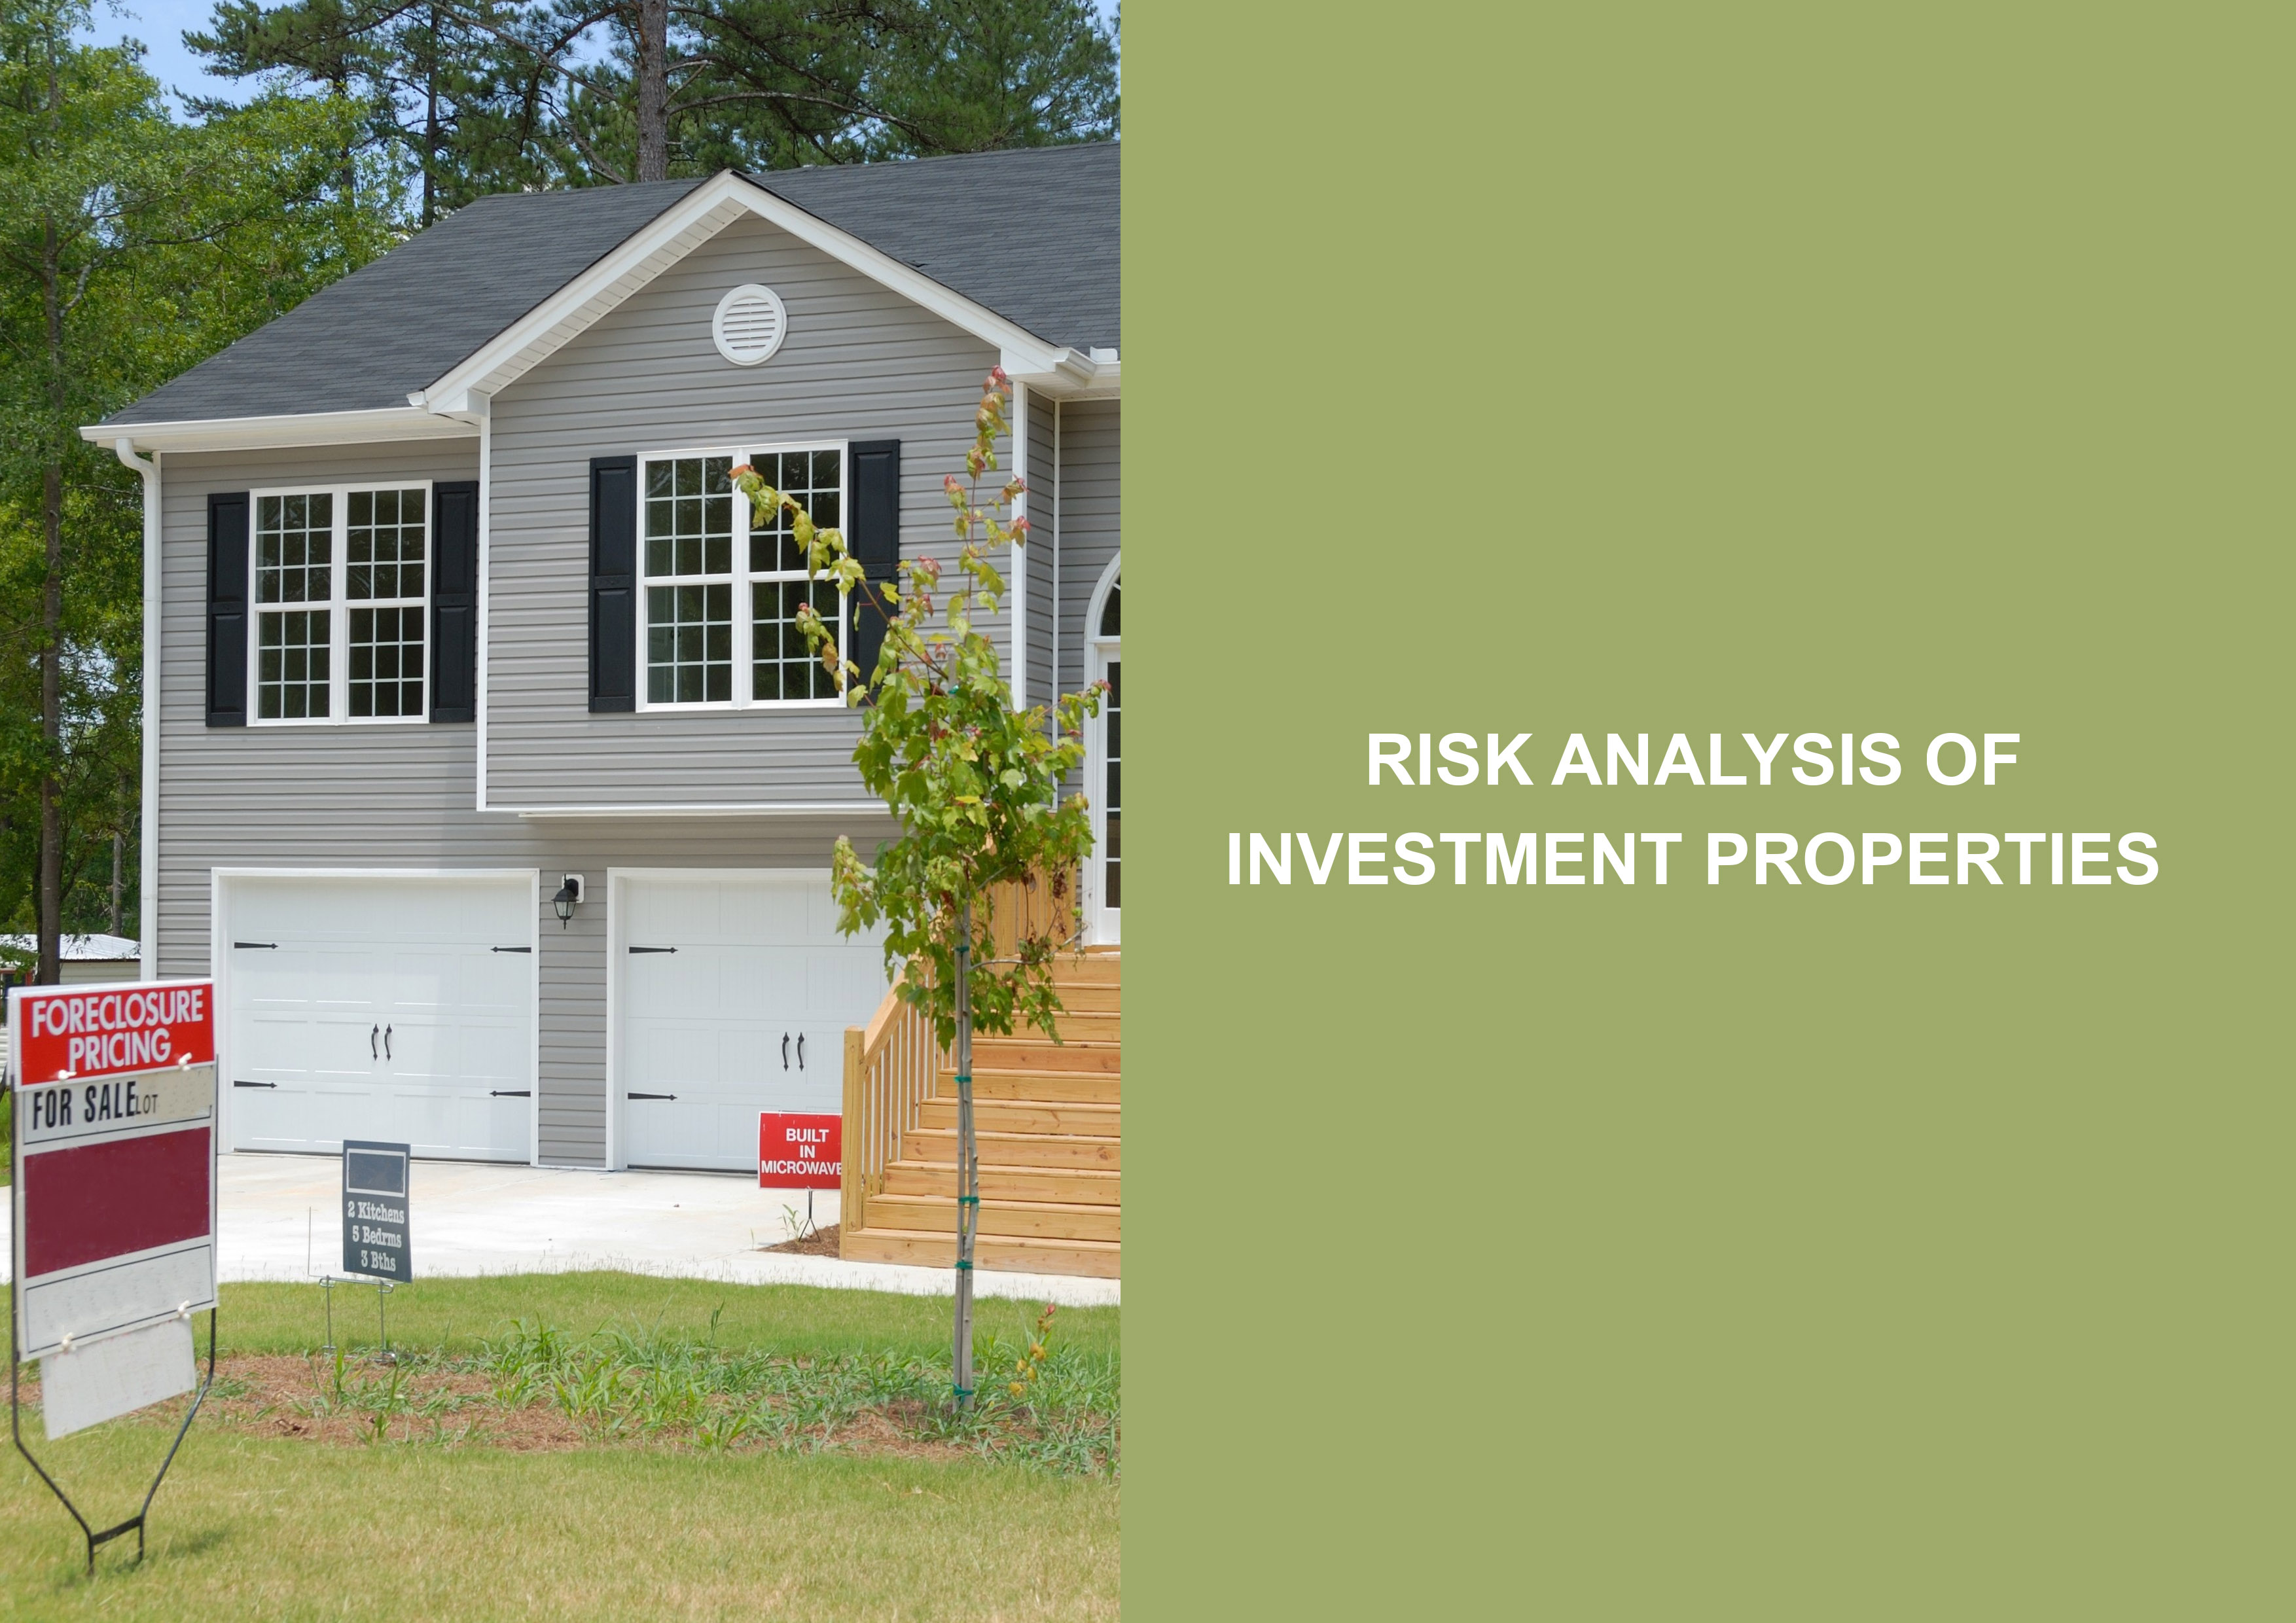 Risk Analysis of Investment Properties